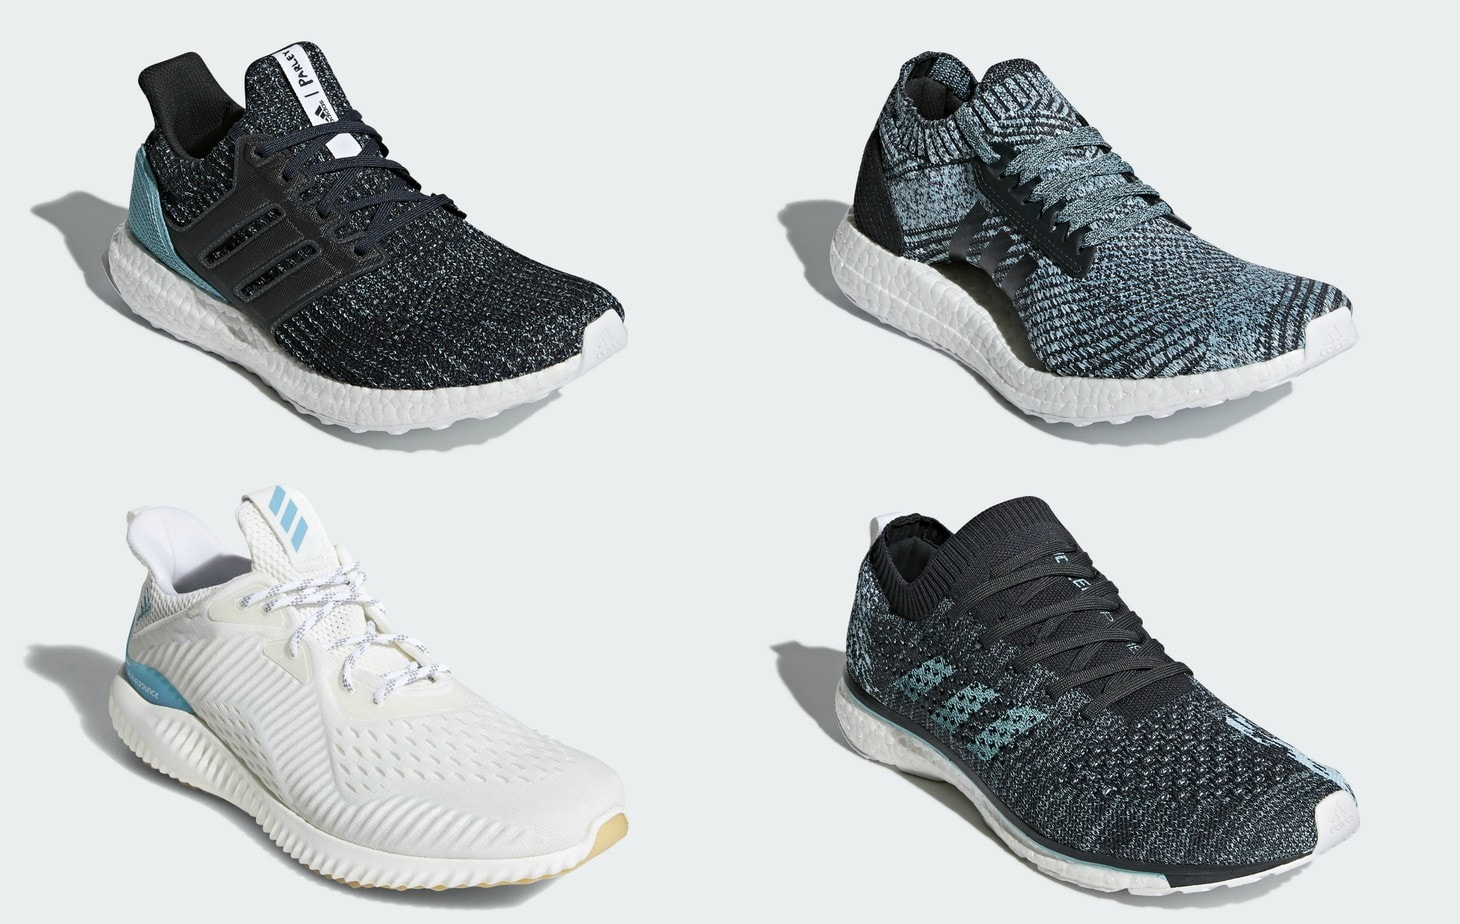 new style ce5dd 1ec18 Parley and adidas have been reenergized by last years sales numbers in  their quest to save the oceans. Now, new information details an April  release larger ...